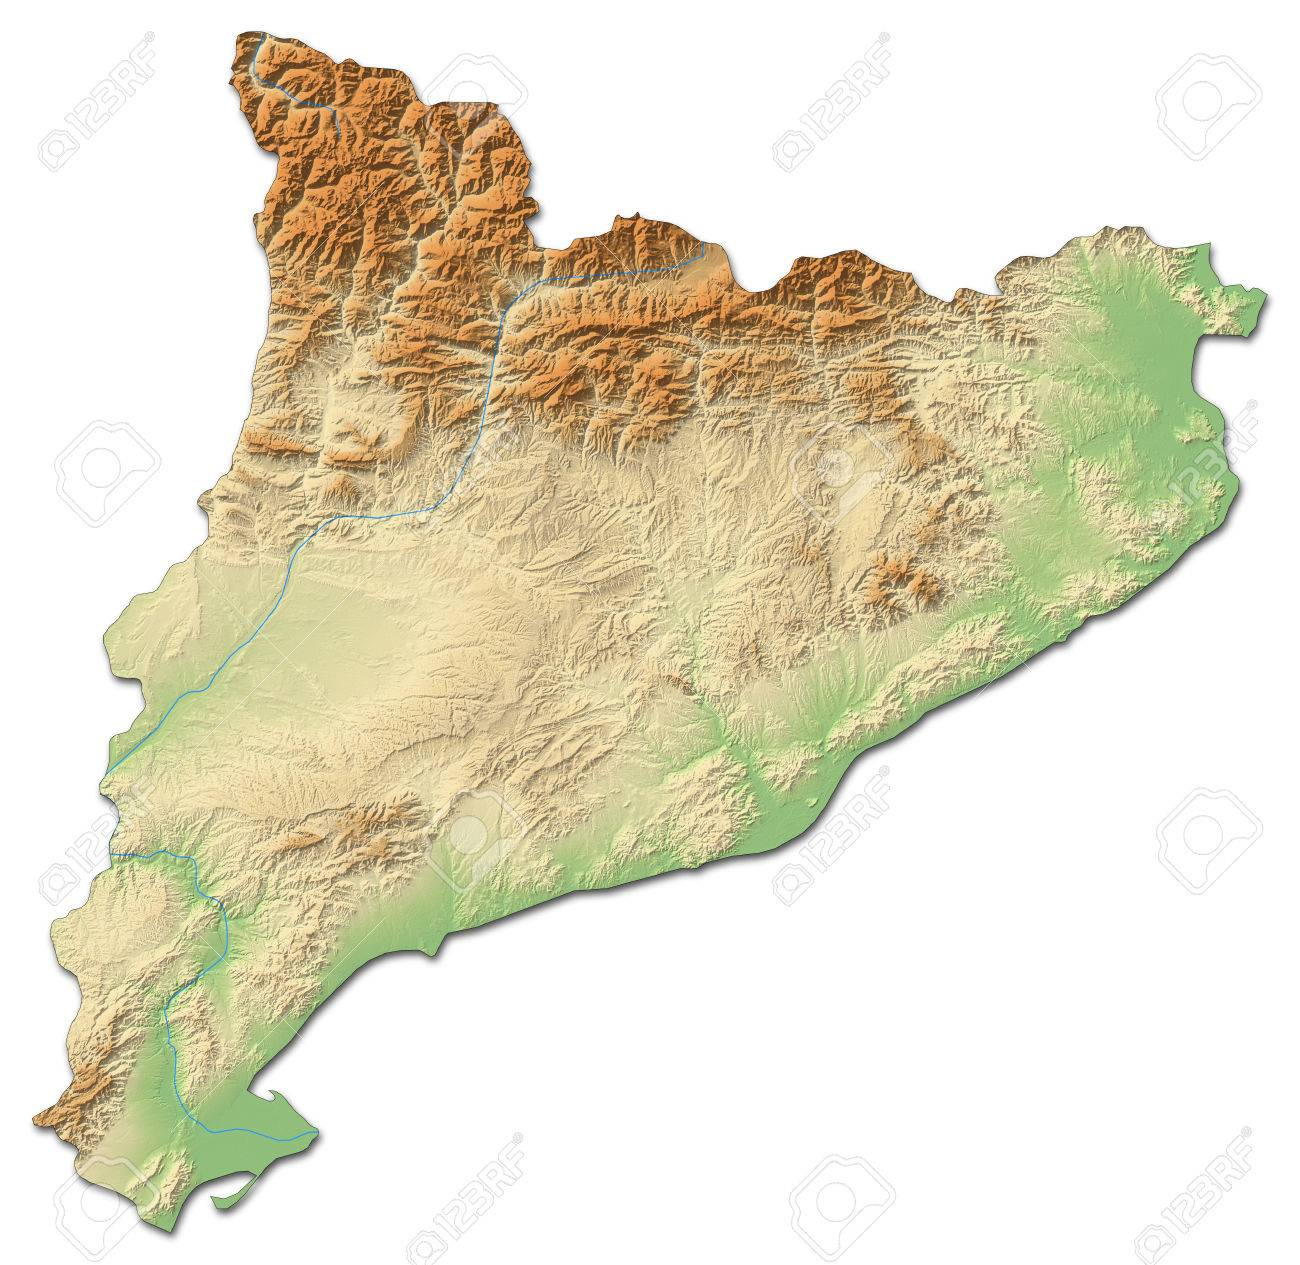 Relief Map Of Catalonia A Province Of Spain With Shaded Relief